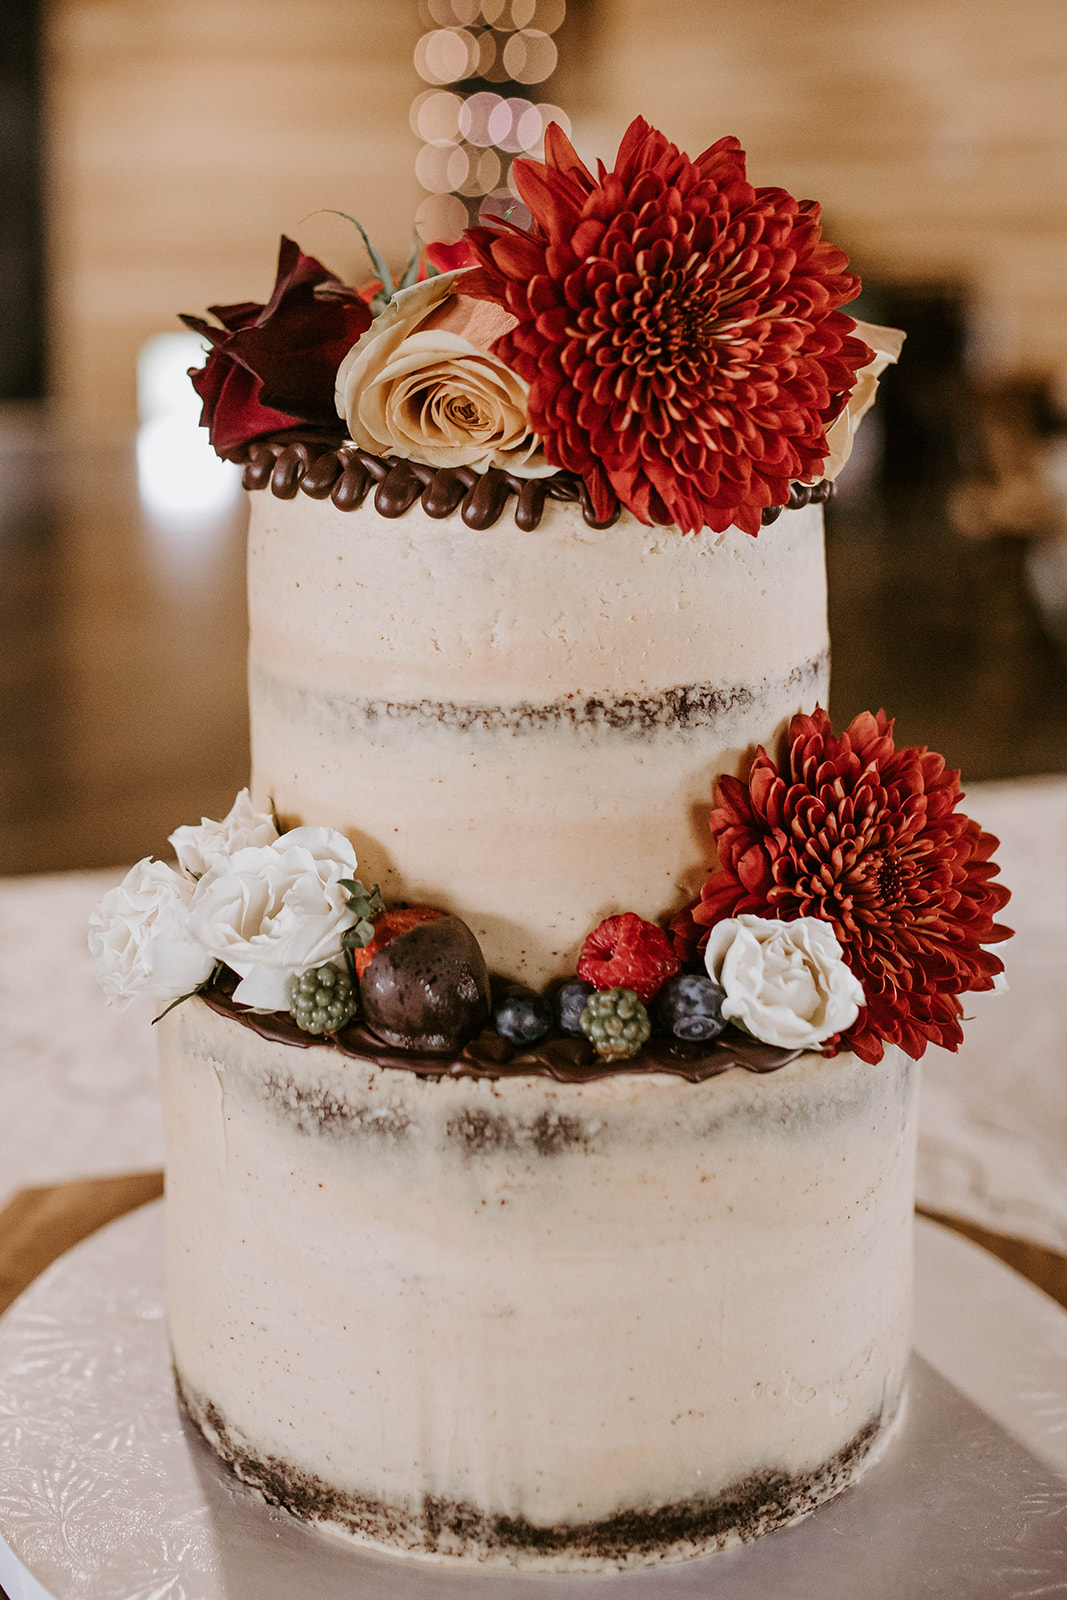 Red floral wedding cake design: Surprise Vow Renewal by Tara Winstead Photography featured on Nashville Bride Guide